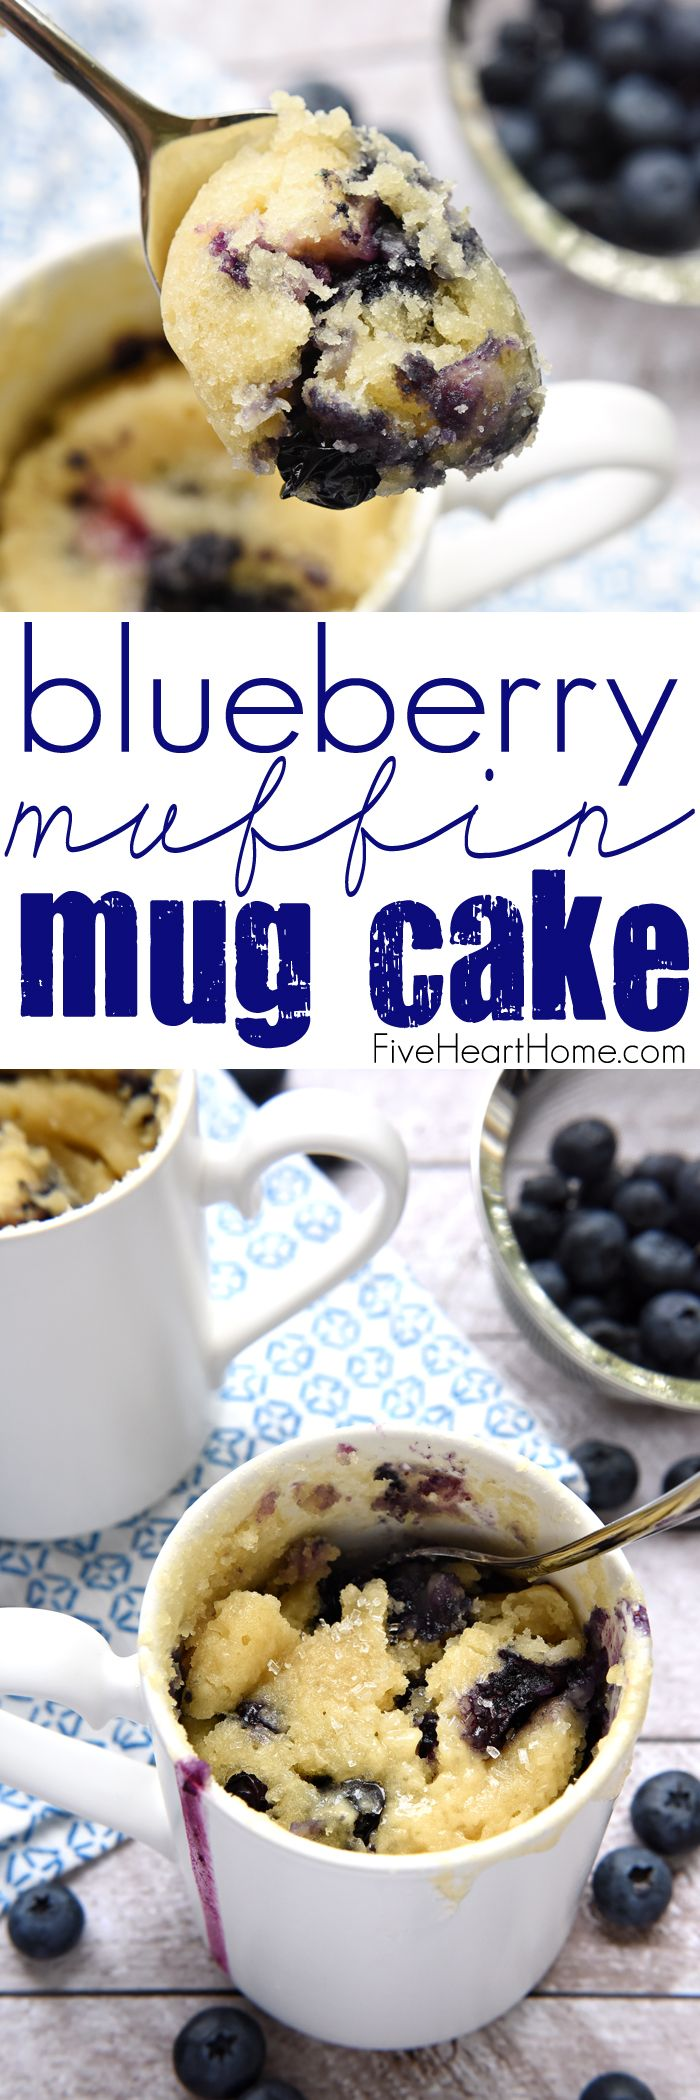 Blueberry Muffin Mug Cake ~ enjoy a fresh, warm, blueberry muffin in a mug that's ready in minutes with this simple-to-make, bursting-with-berries, breakfast or snack recipe